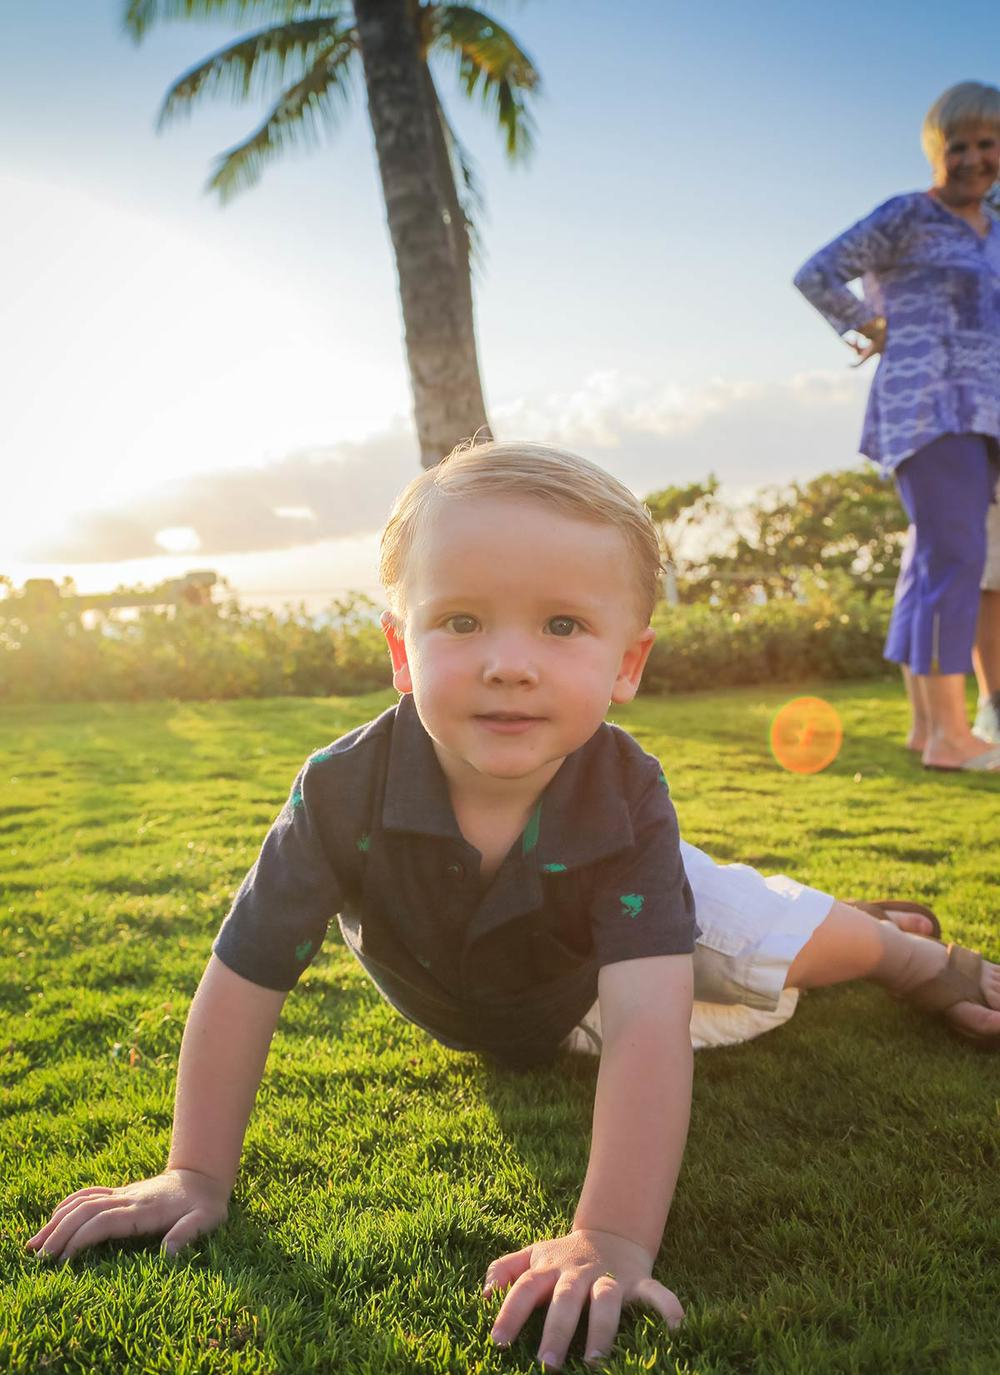 child-photography-session-Maui-stricklen.jpg